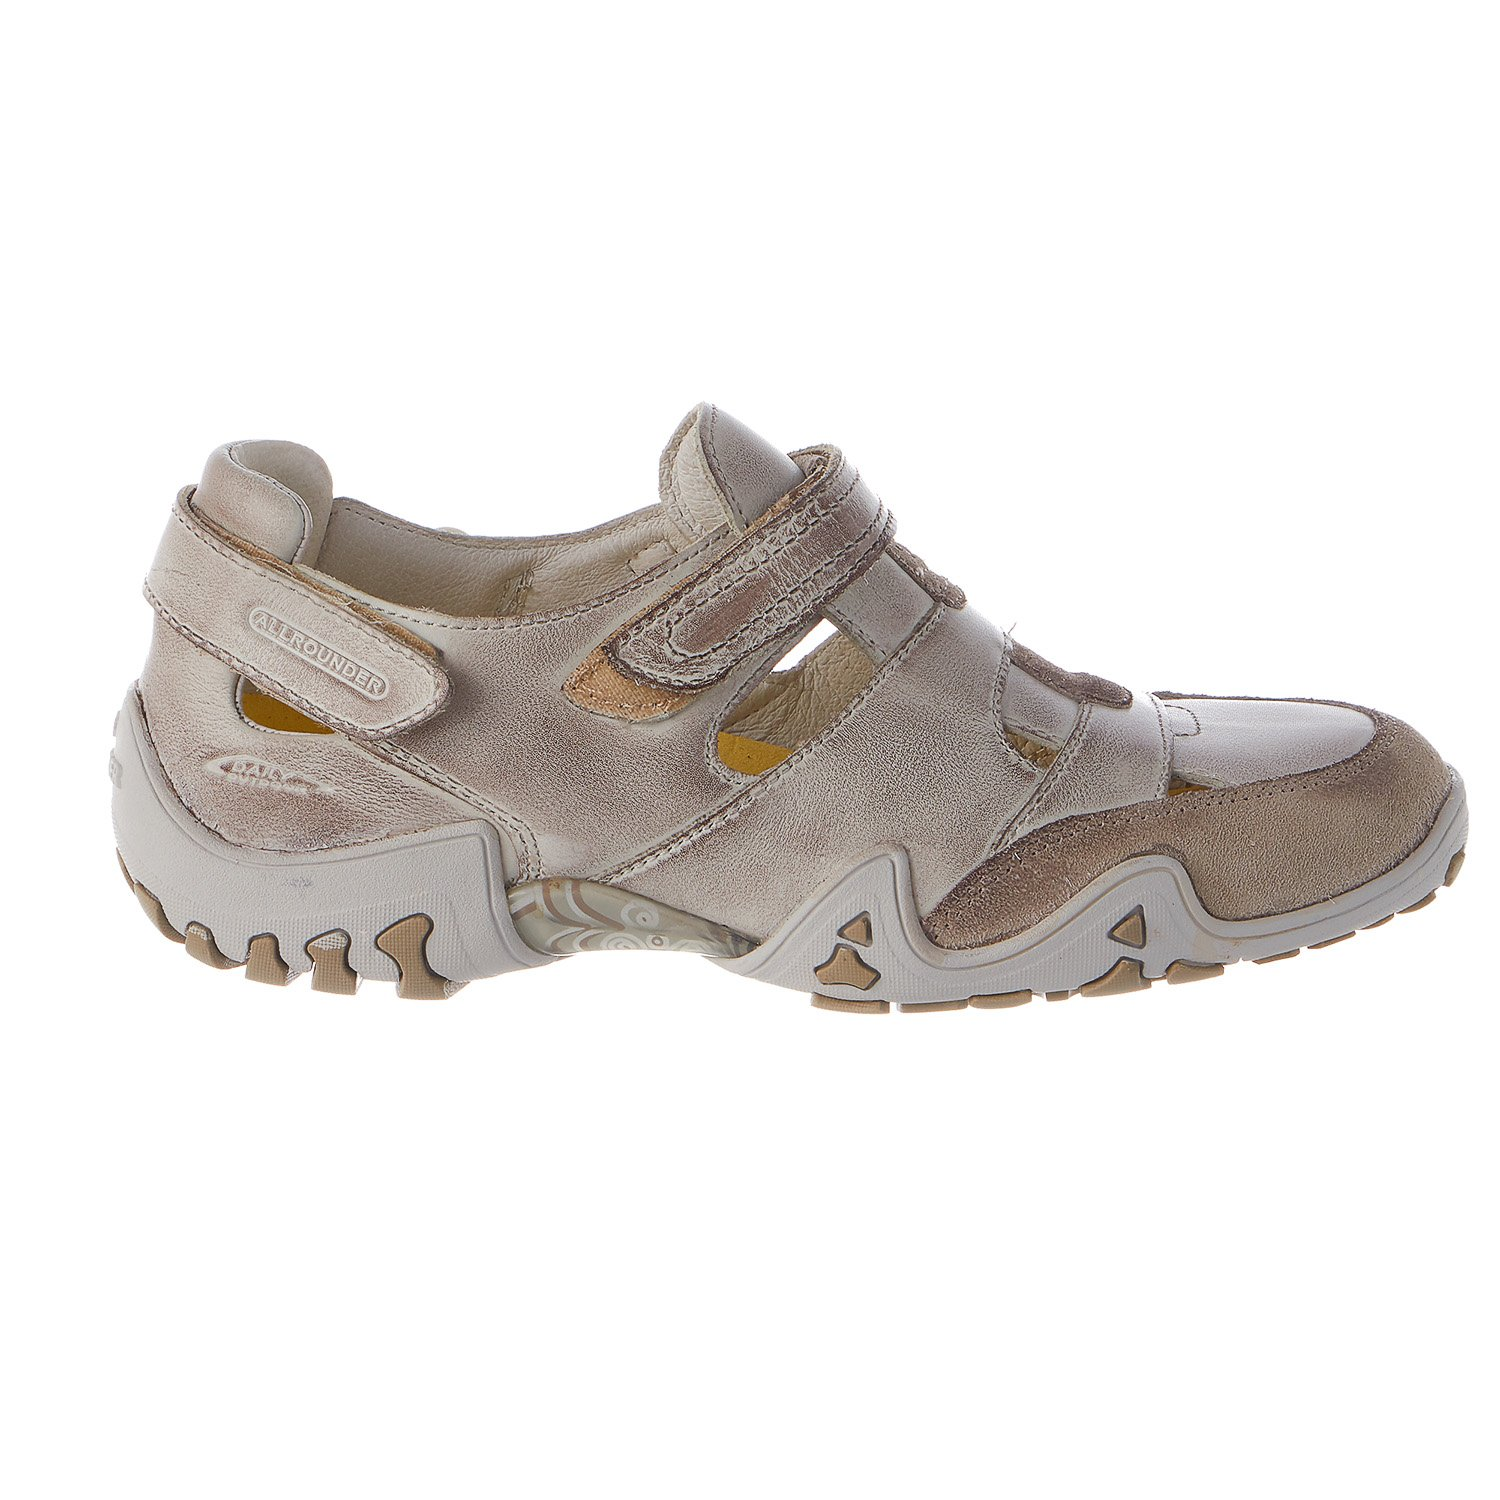 Allrounder by Mephisto Firelli - Sabbia Dye Washed - Womens - 8